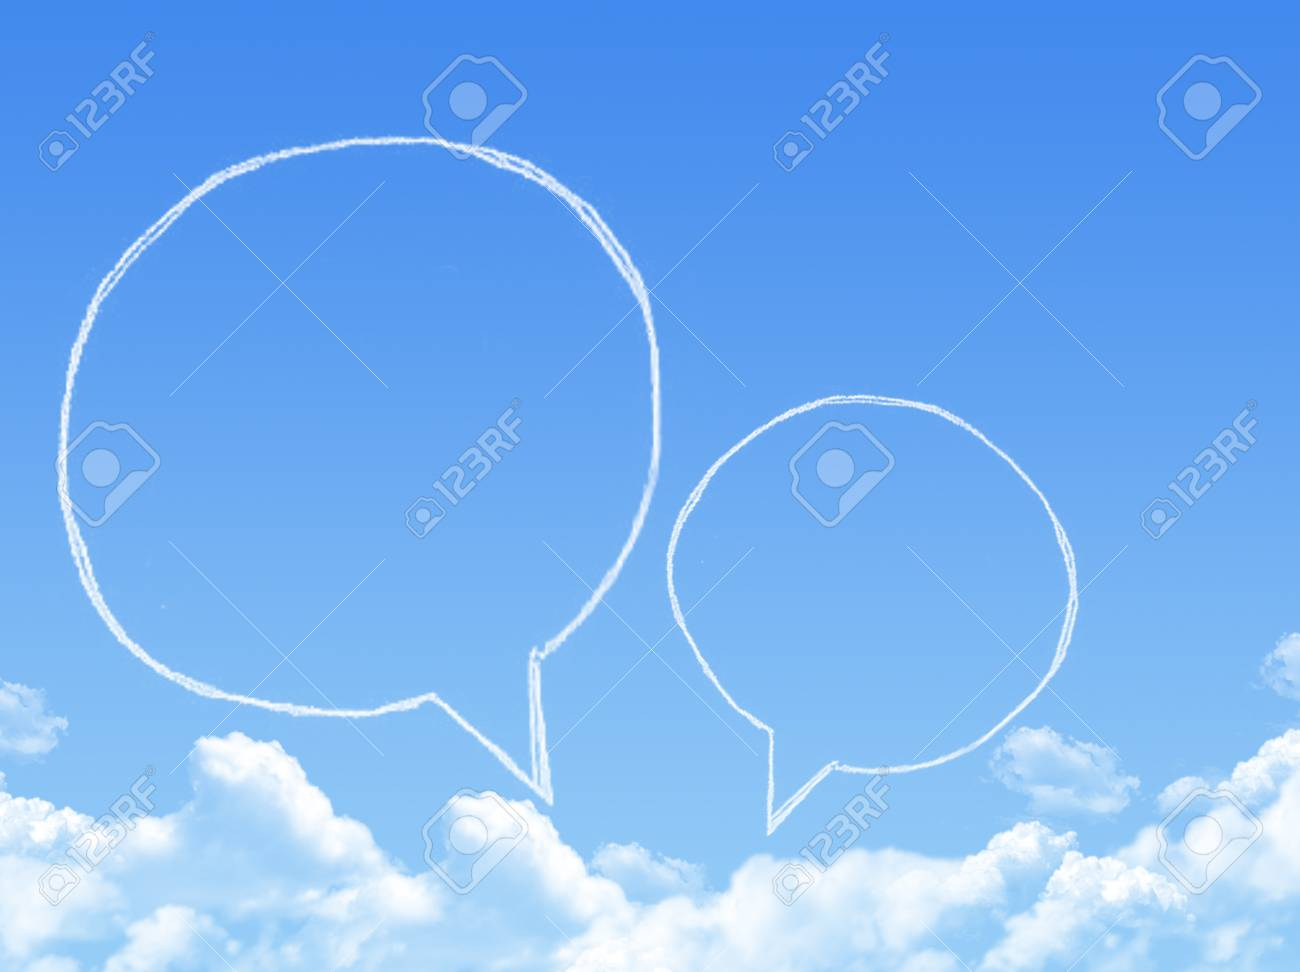 Cloud shaped as chat ,dream concept Stock Photo - 24043538